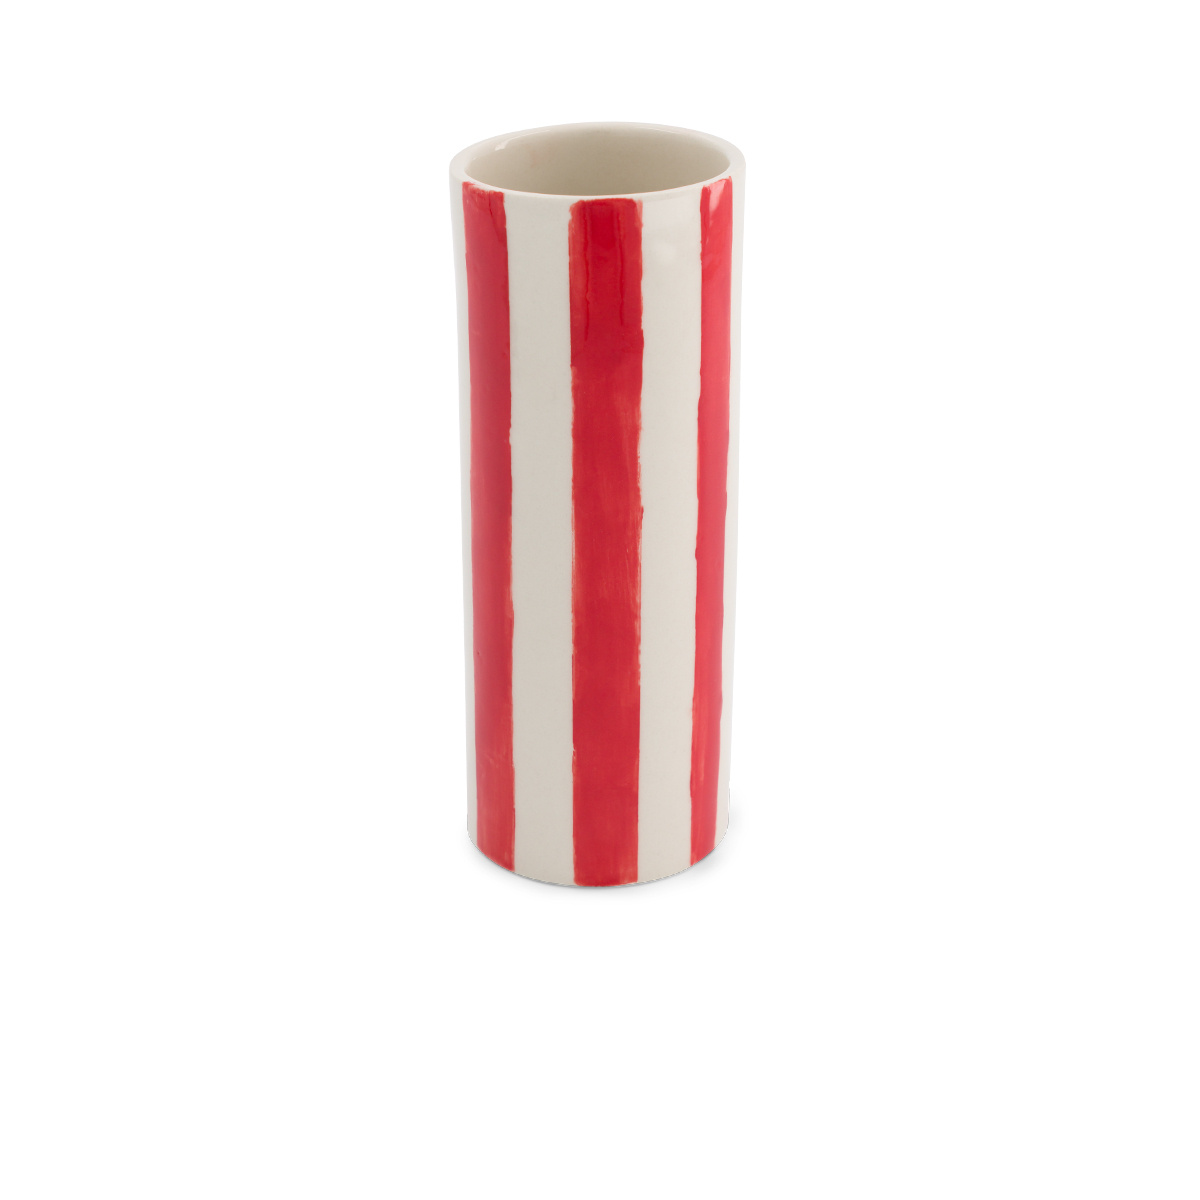 Domino pot large model with red pattern